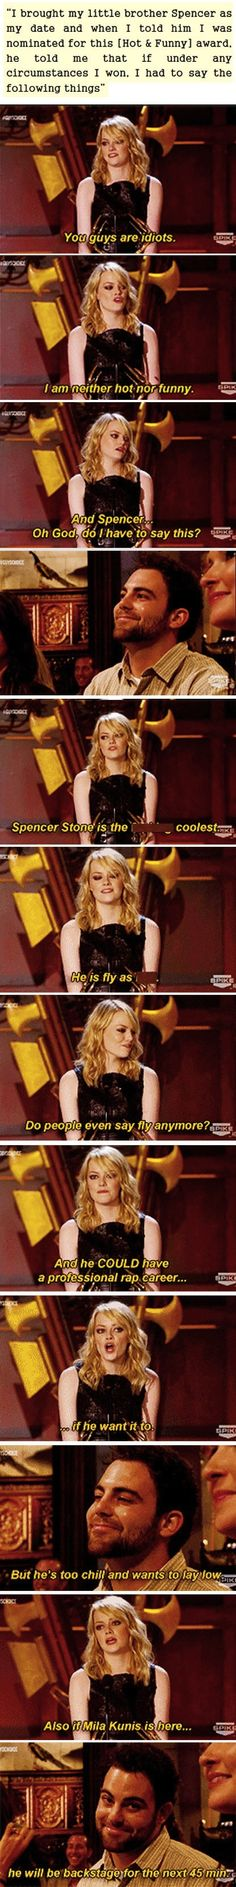 omigosh i died. emma's reaction to receiving the hot and funny award